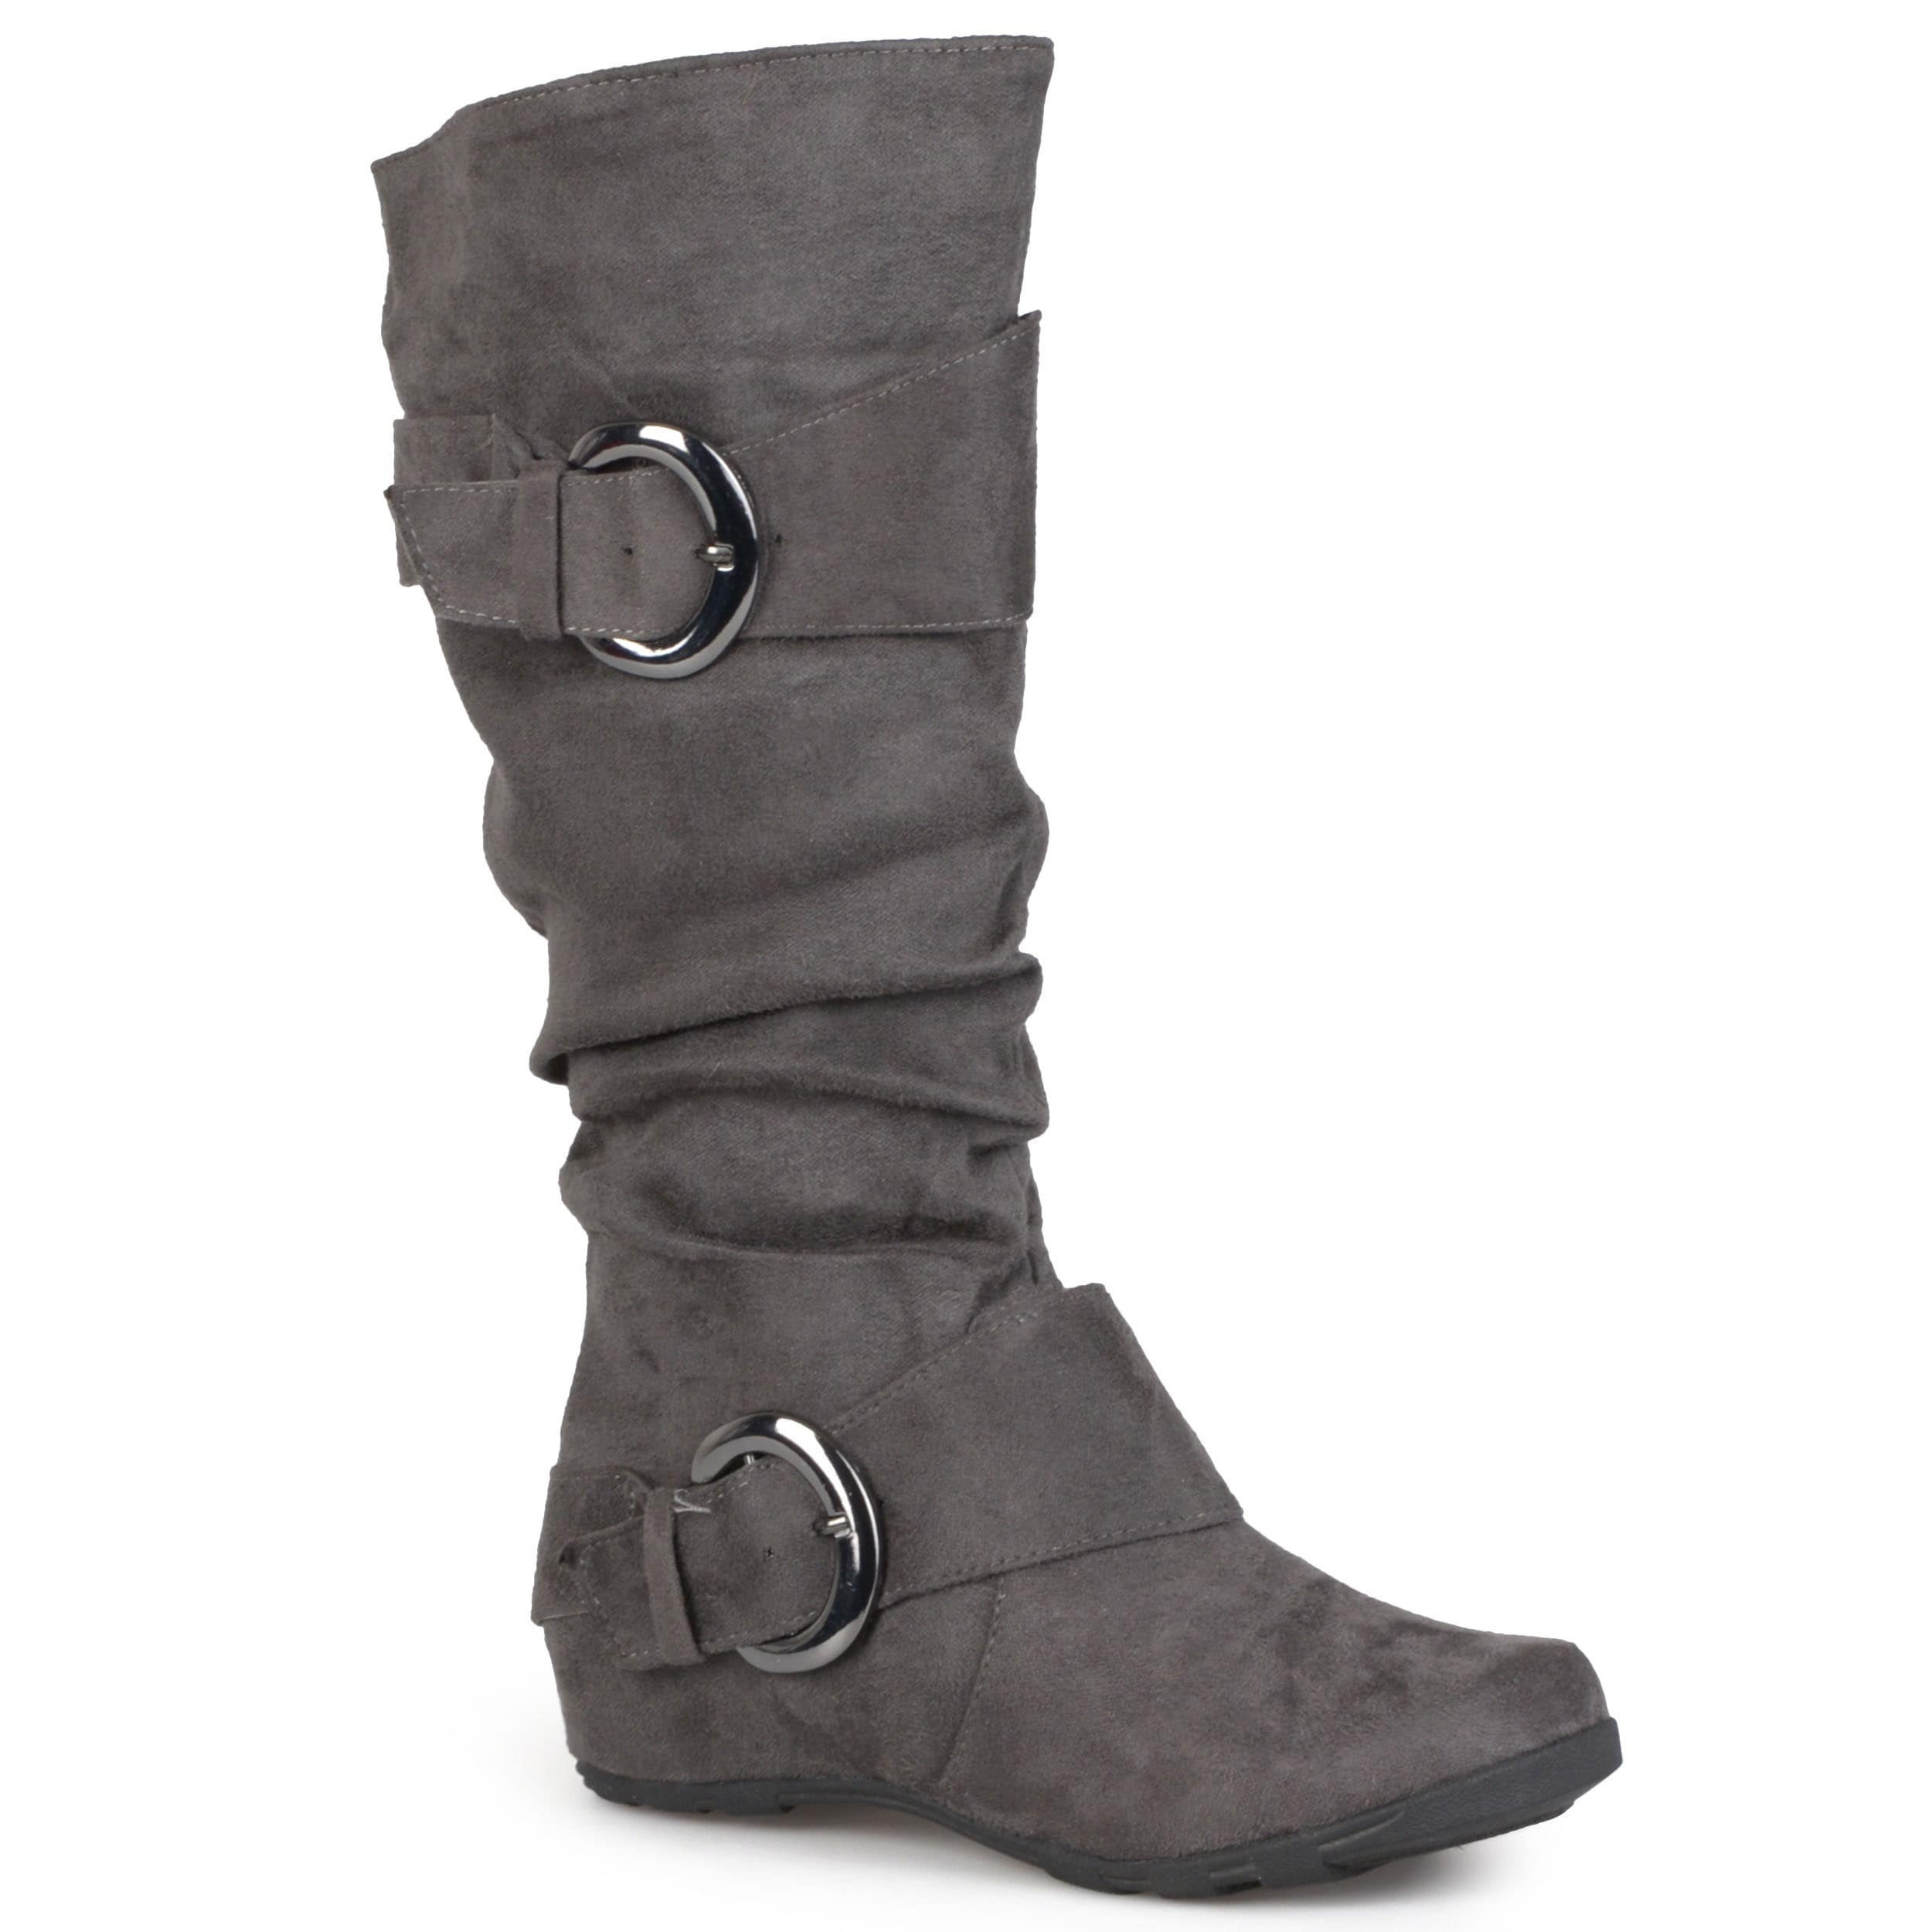 Buy Women's Boots Online at Overstock | Our Best Women's